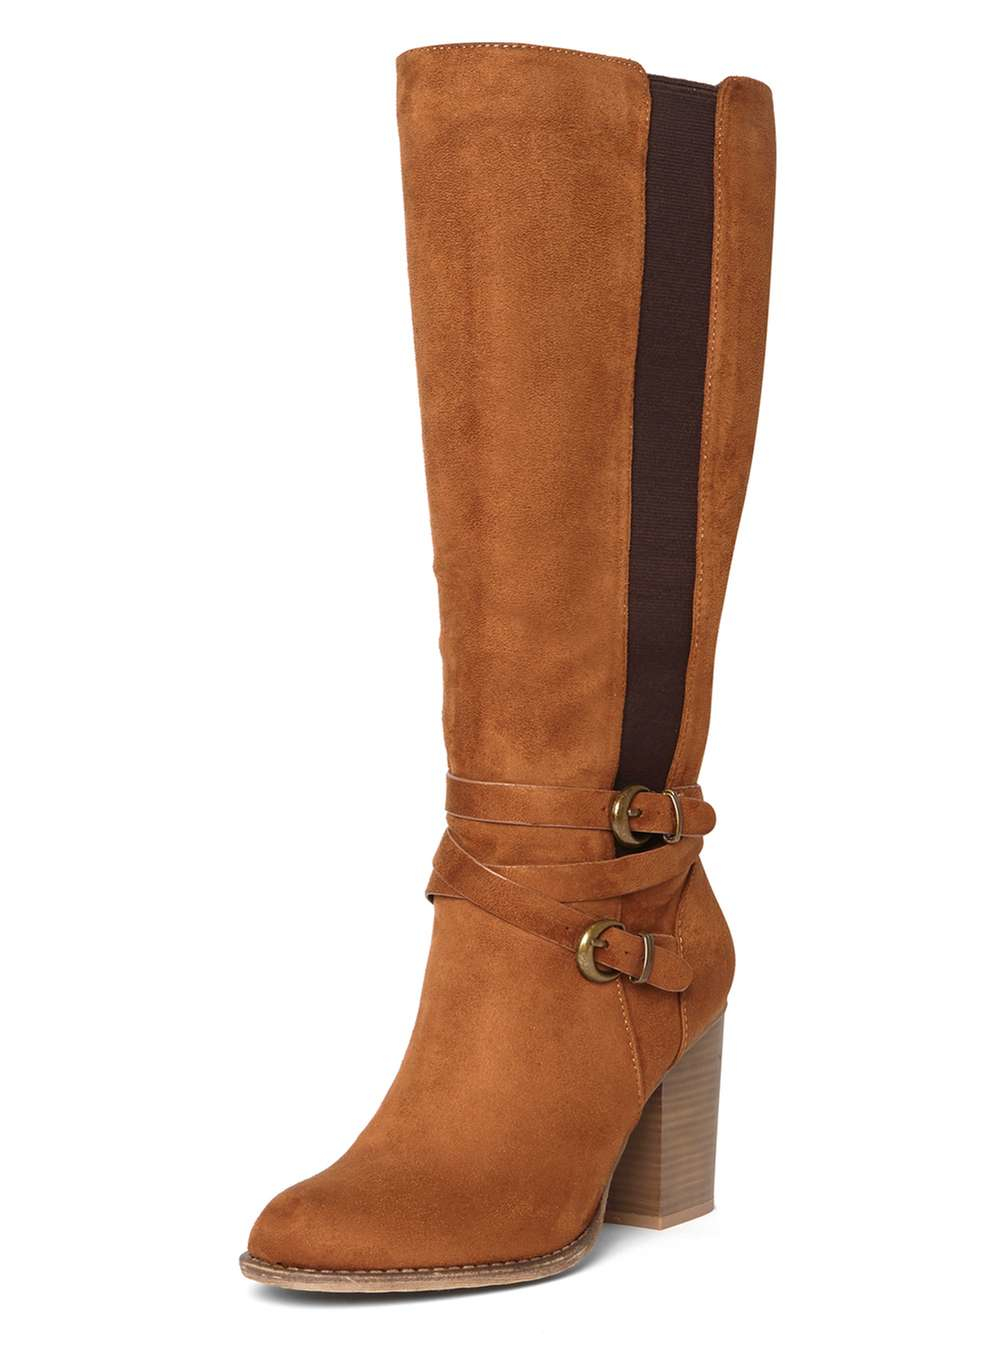 a1c9c7fd209 Lyst - Dorothy Perkins Tan  kyla  Knee High Boots in Brown